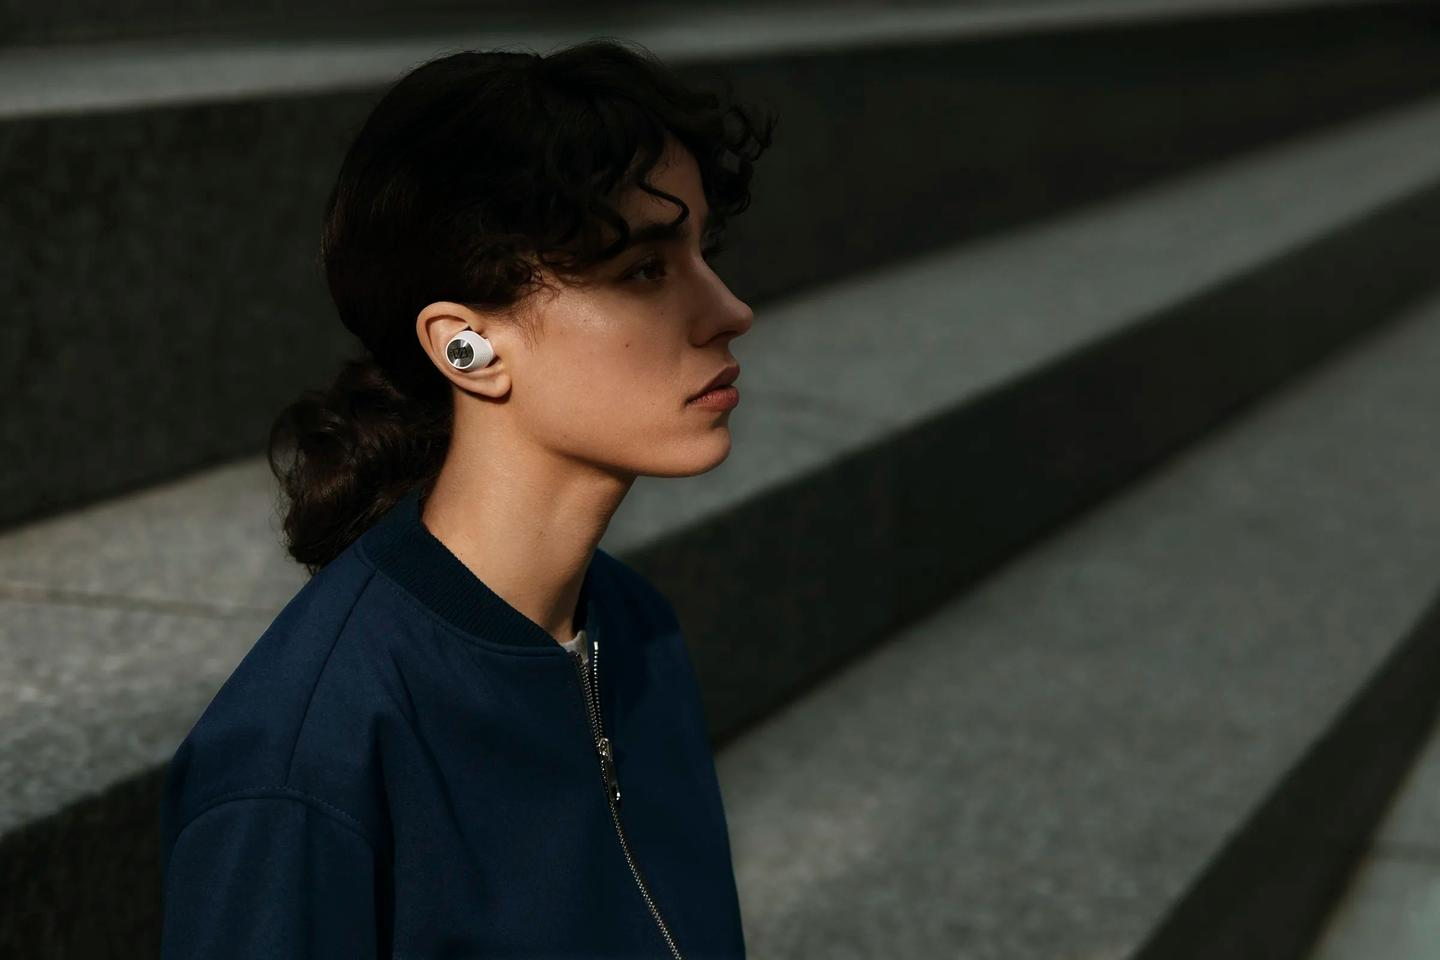 The Momentum True Wireless 2 earphones come with ANC, touch control and almost double the battery life